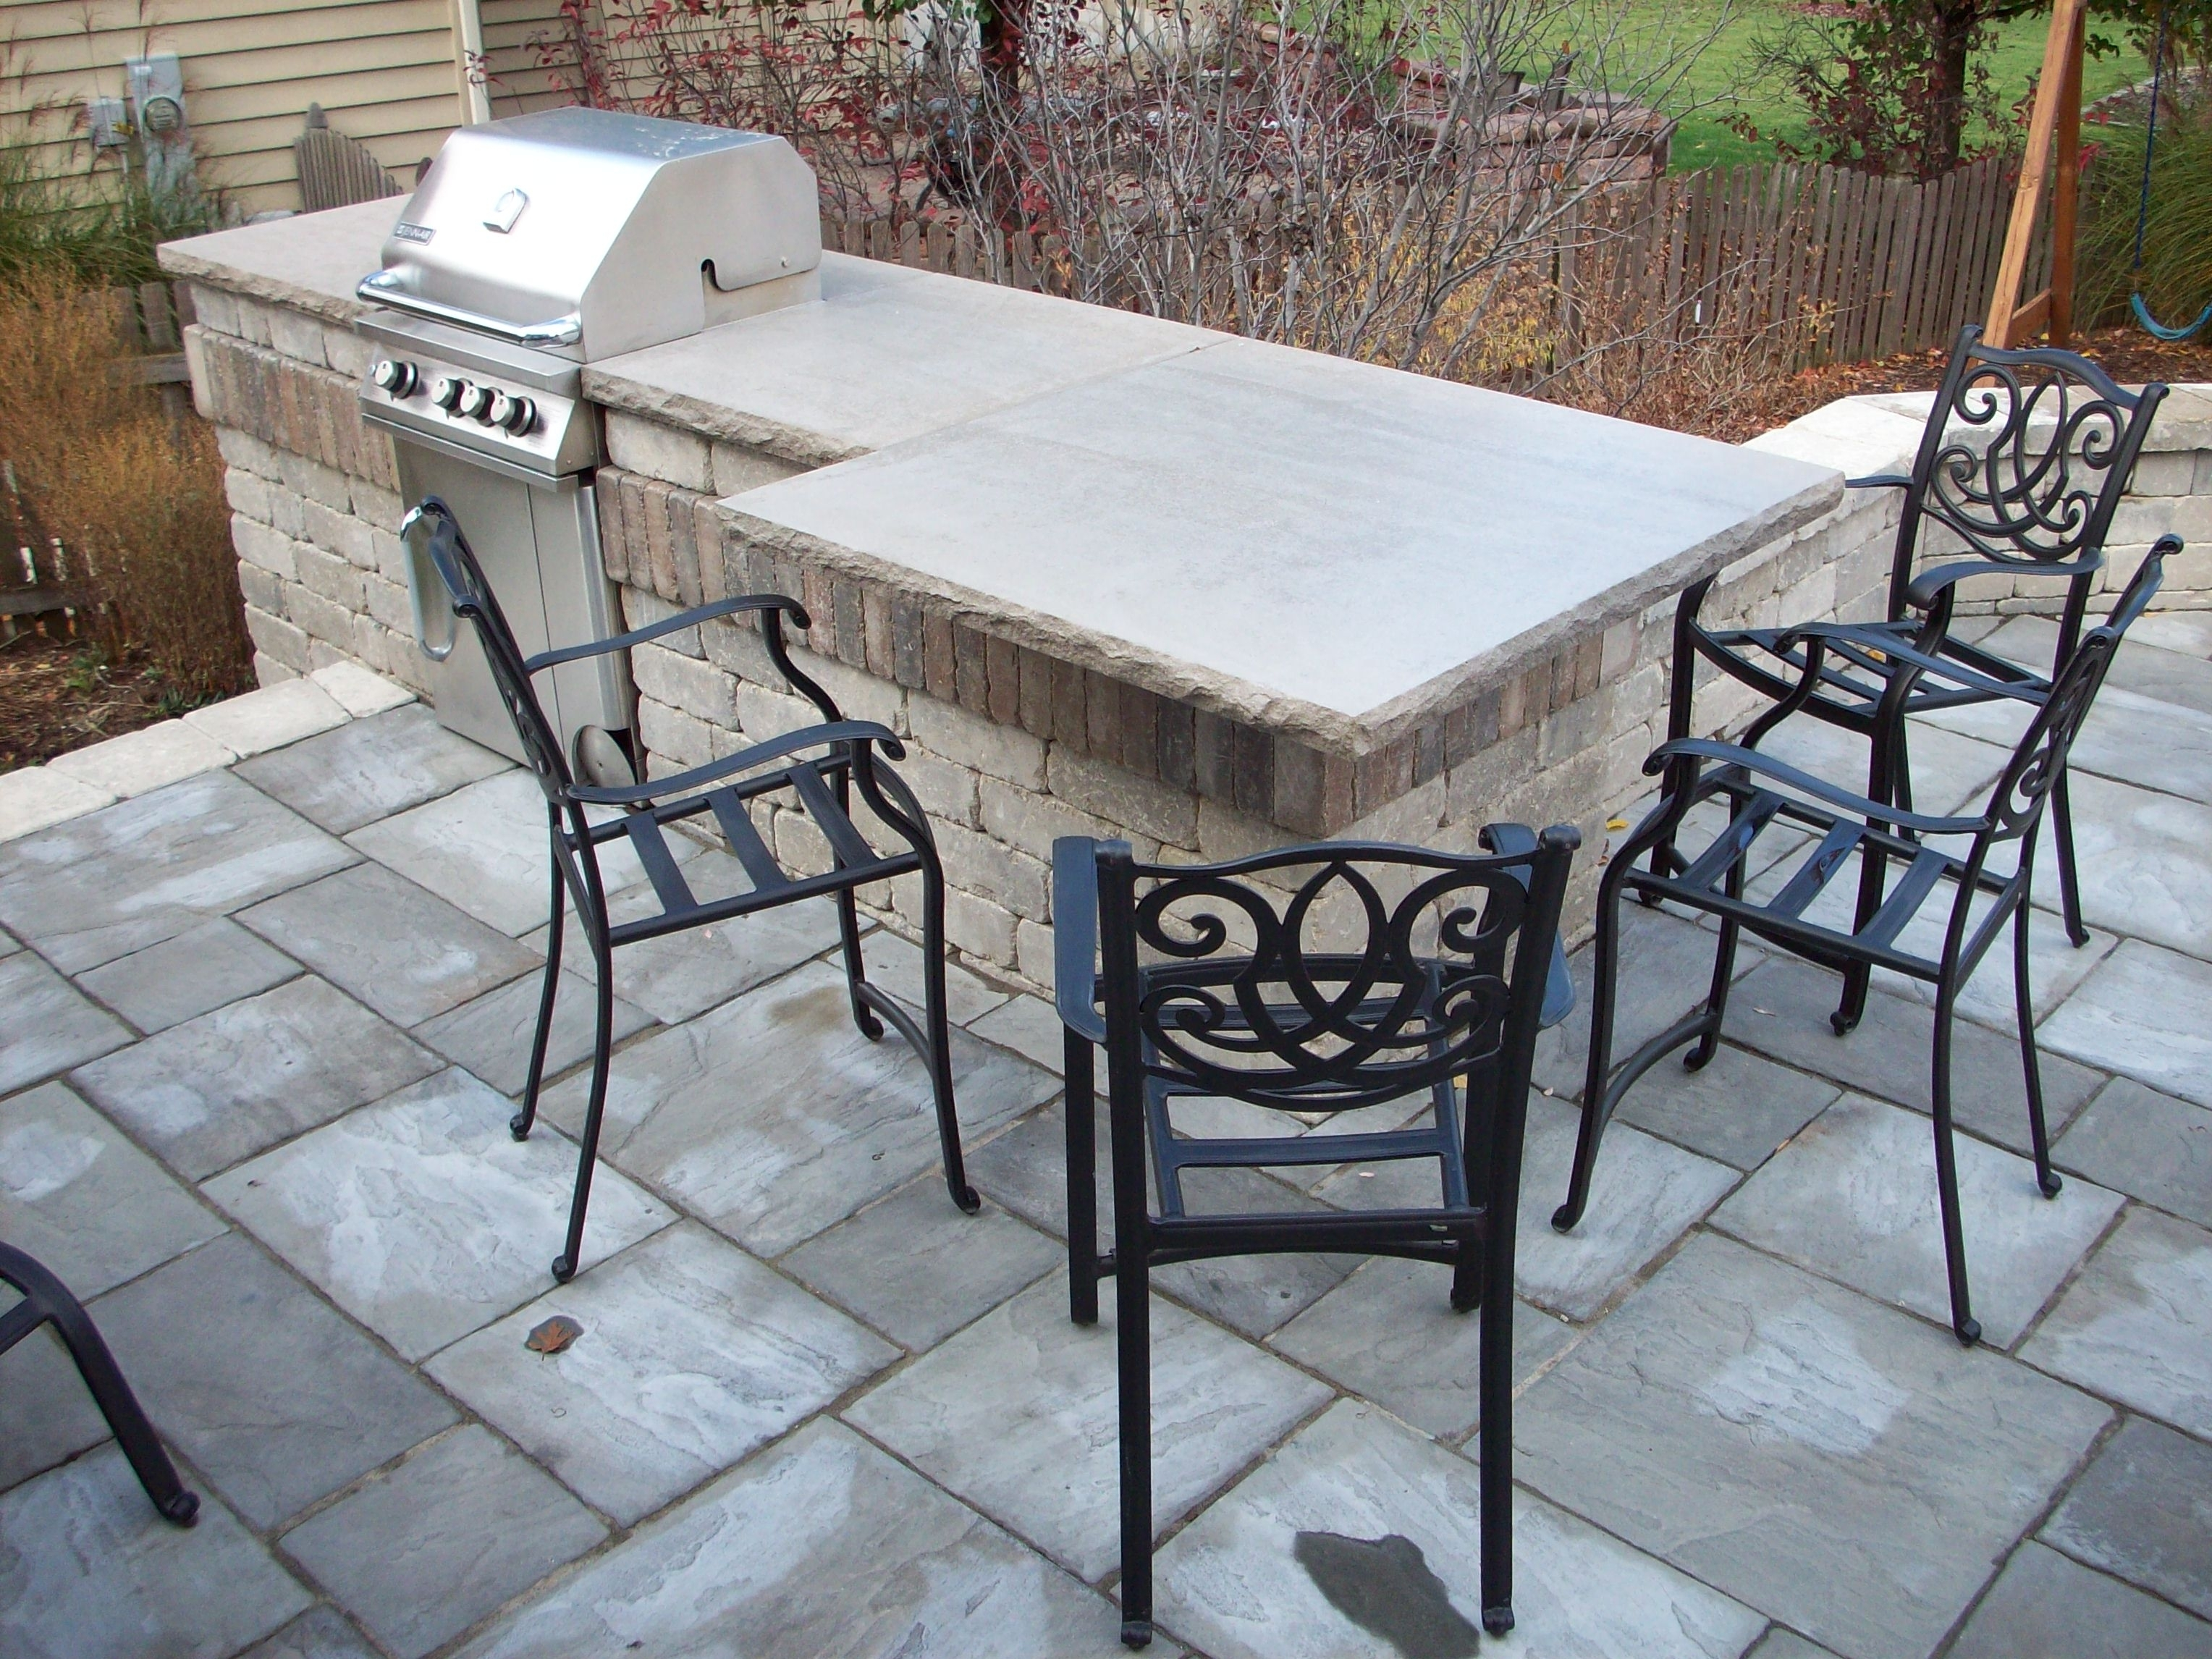 Image of: Outdoor Kitchens Unilock Olde Quarry Bbq Limestone Countertop Regarding Unilock Outdoor Kitchens Decorate Unilock Outdoor Kitchens